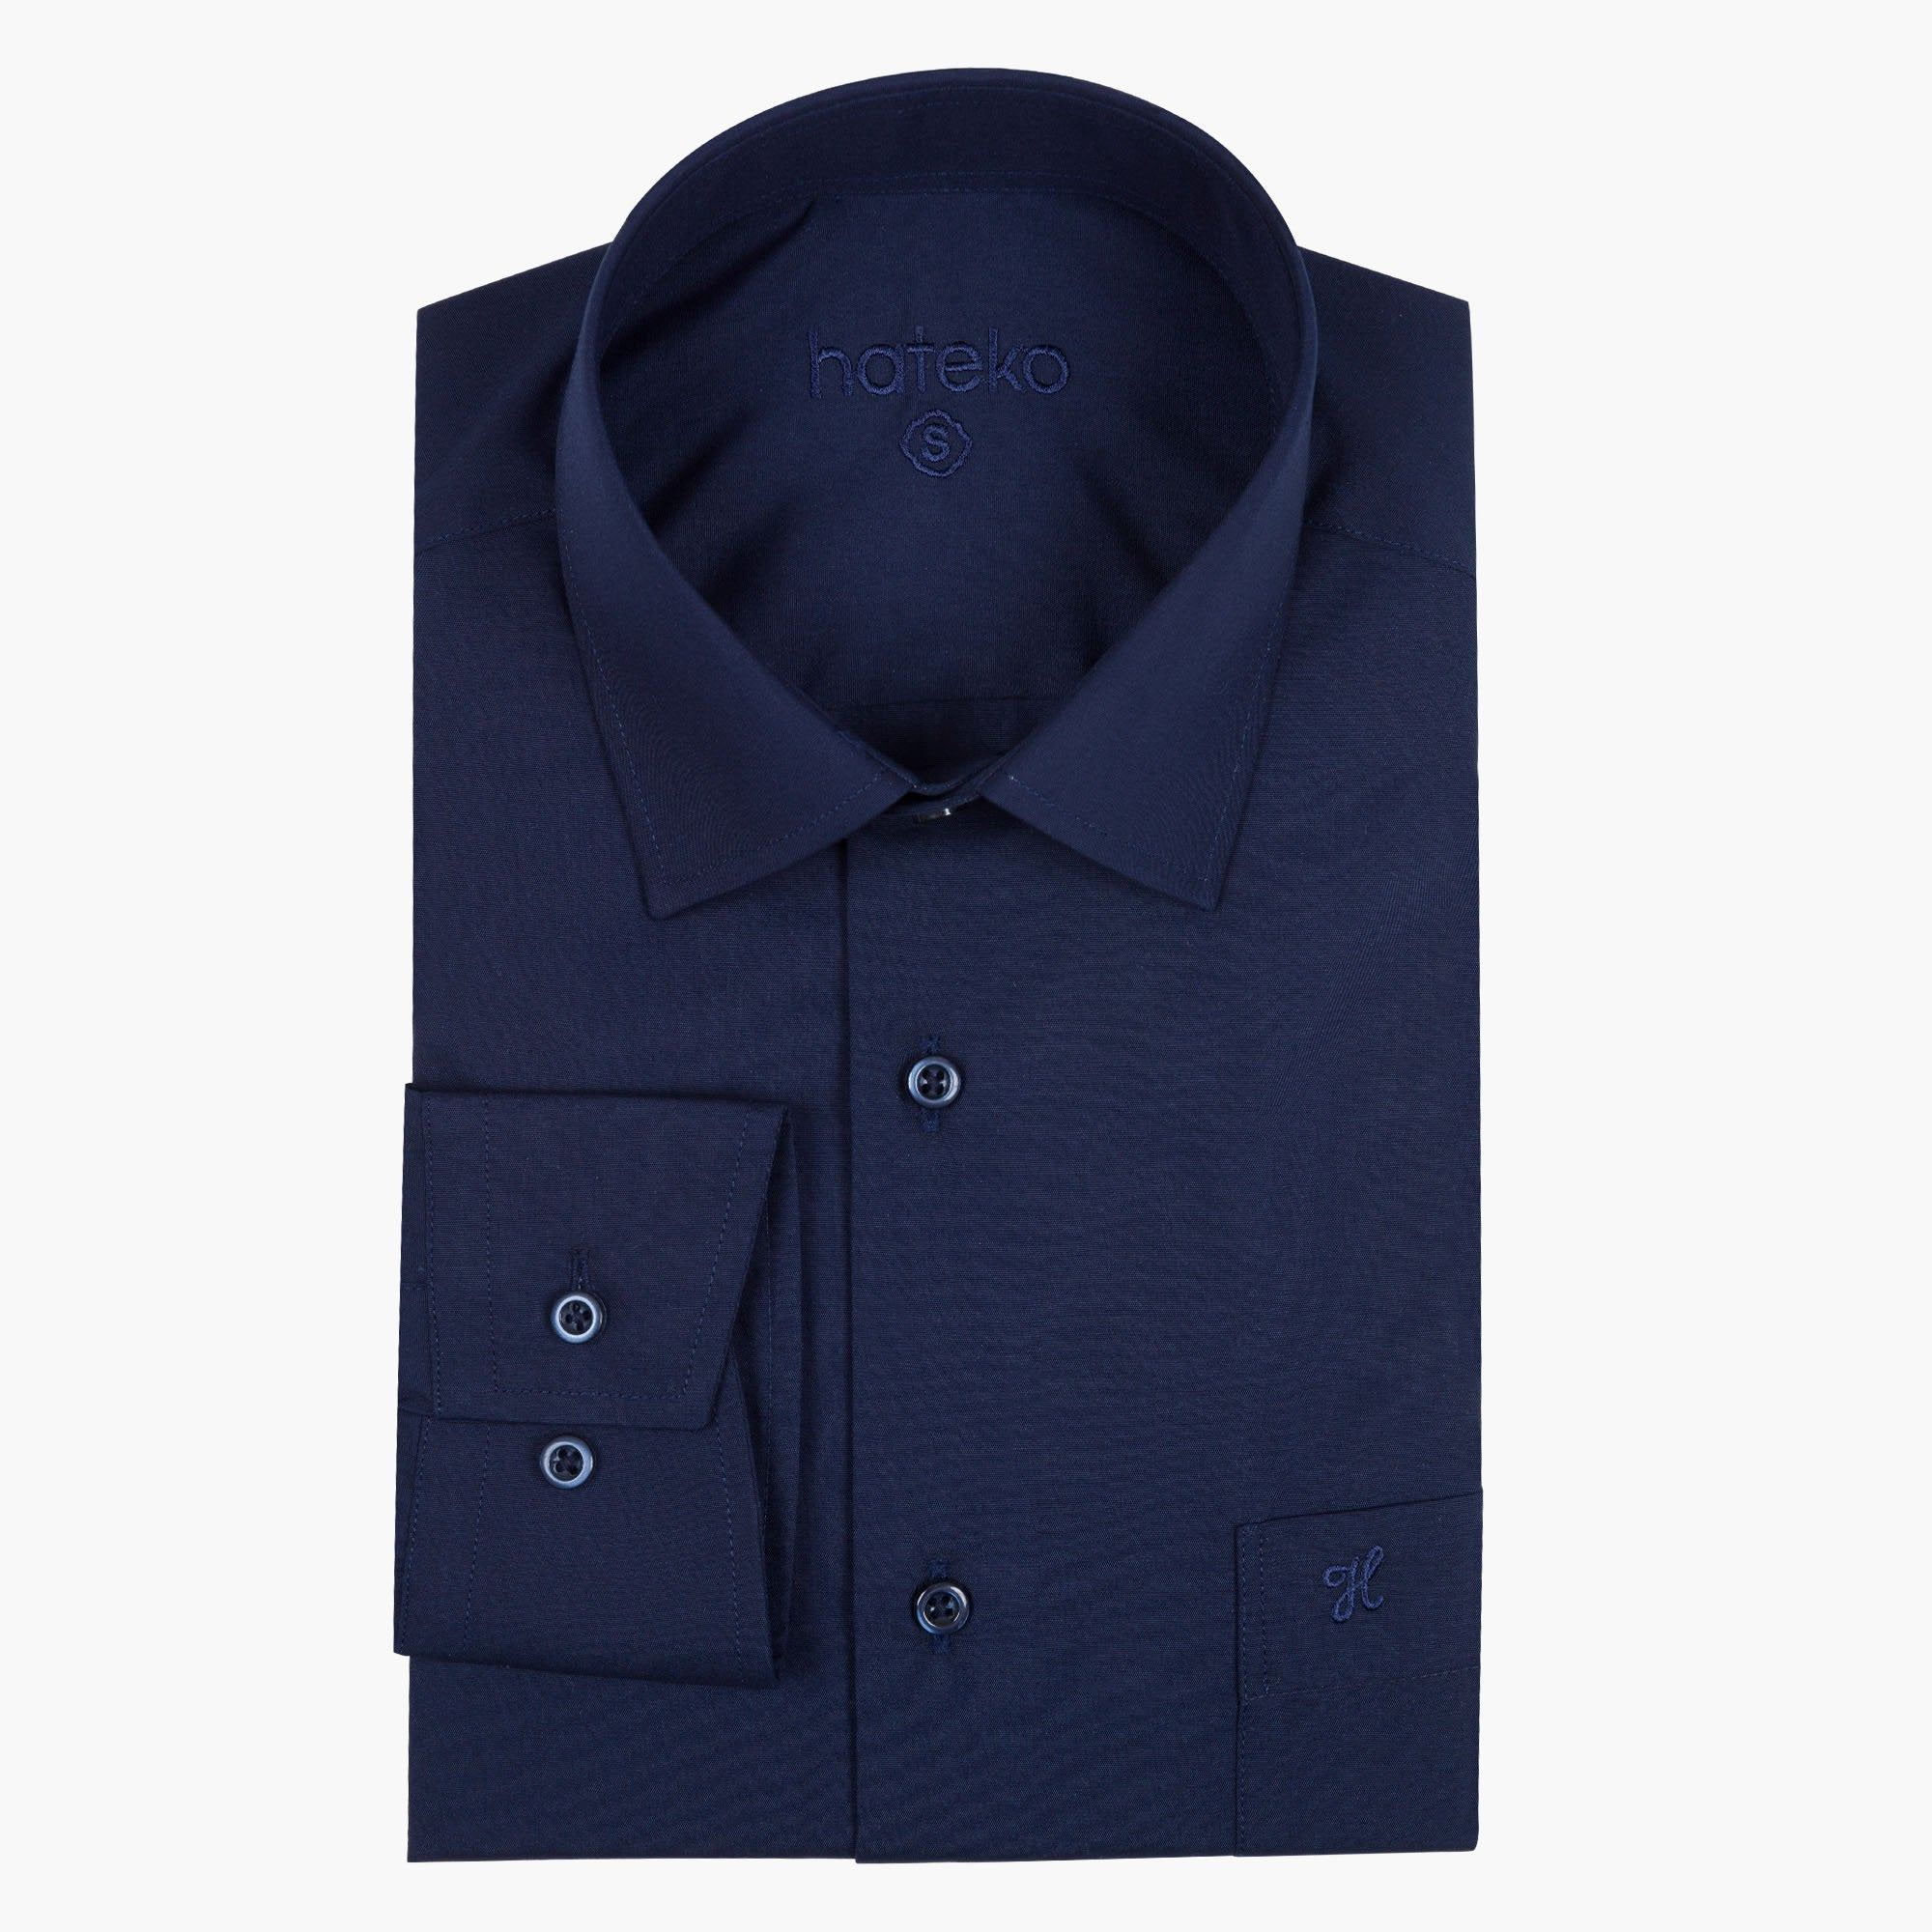 Navy Regular Fit Dress Shirt